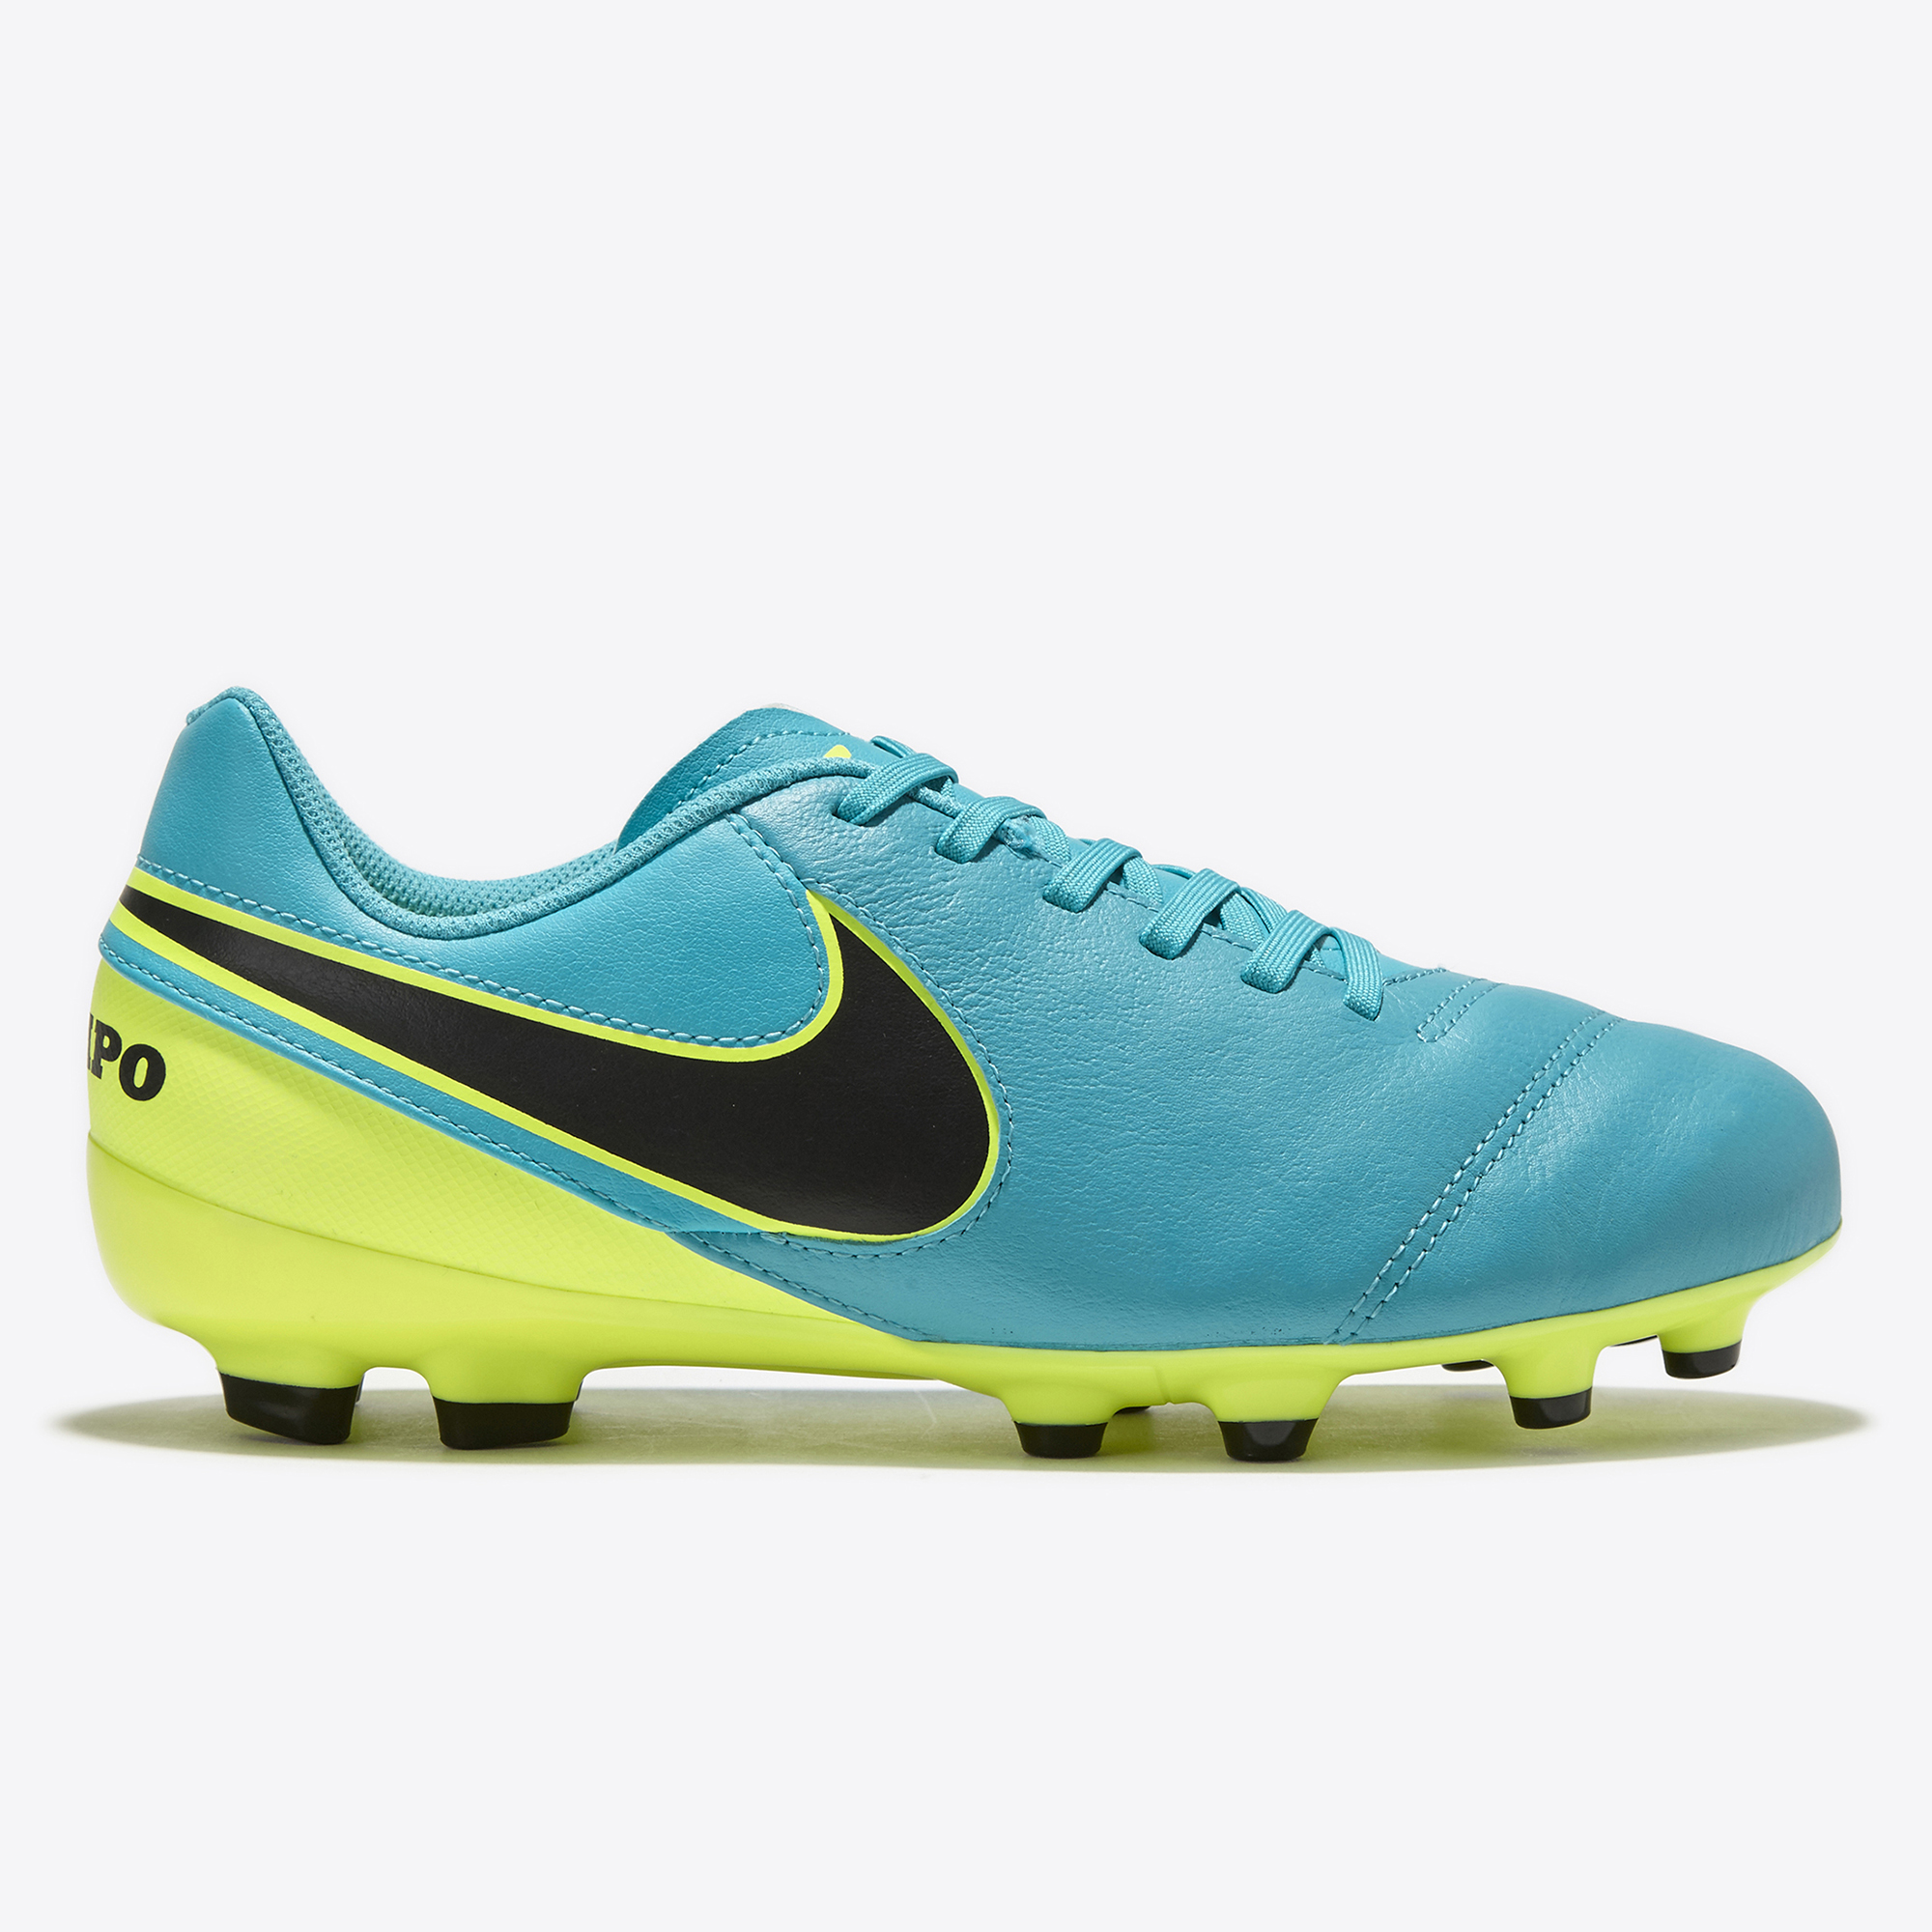 Nike Tiempo Legend VI Firm Ground Football Boots - Clear Jade/Black/Vo